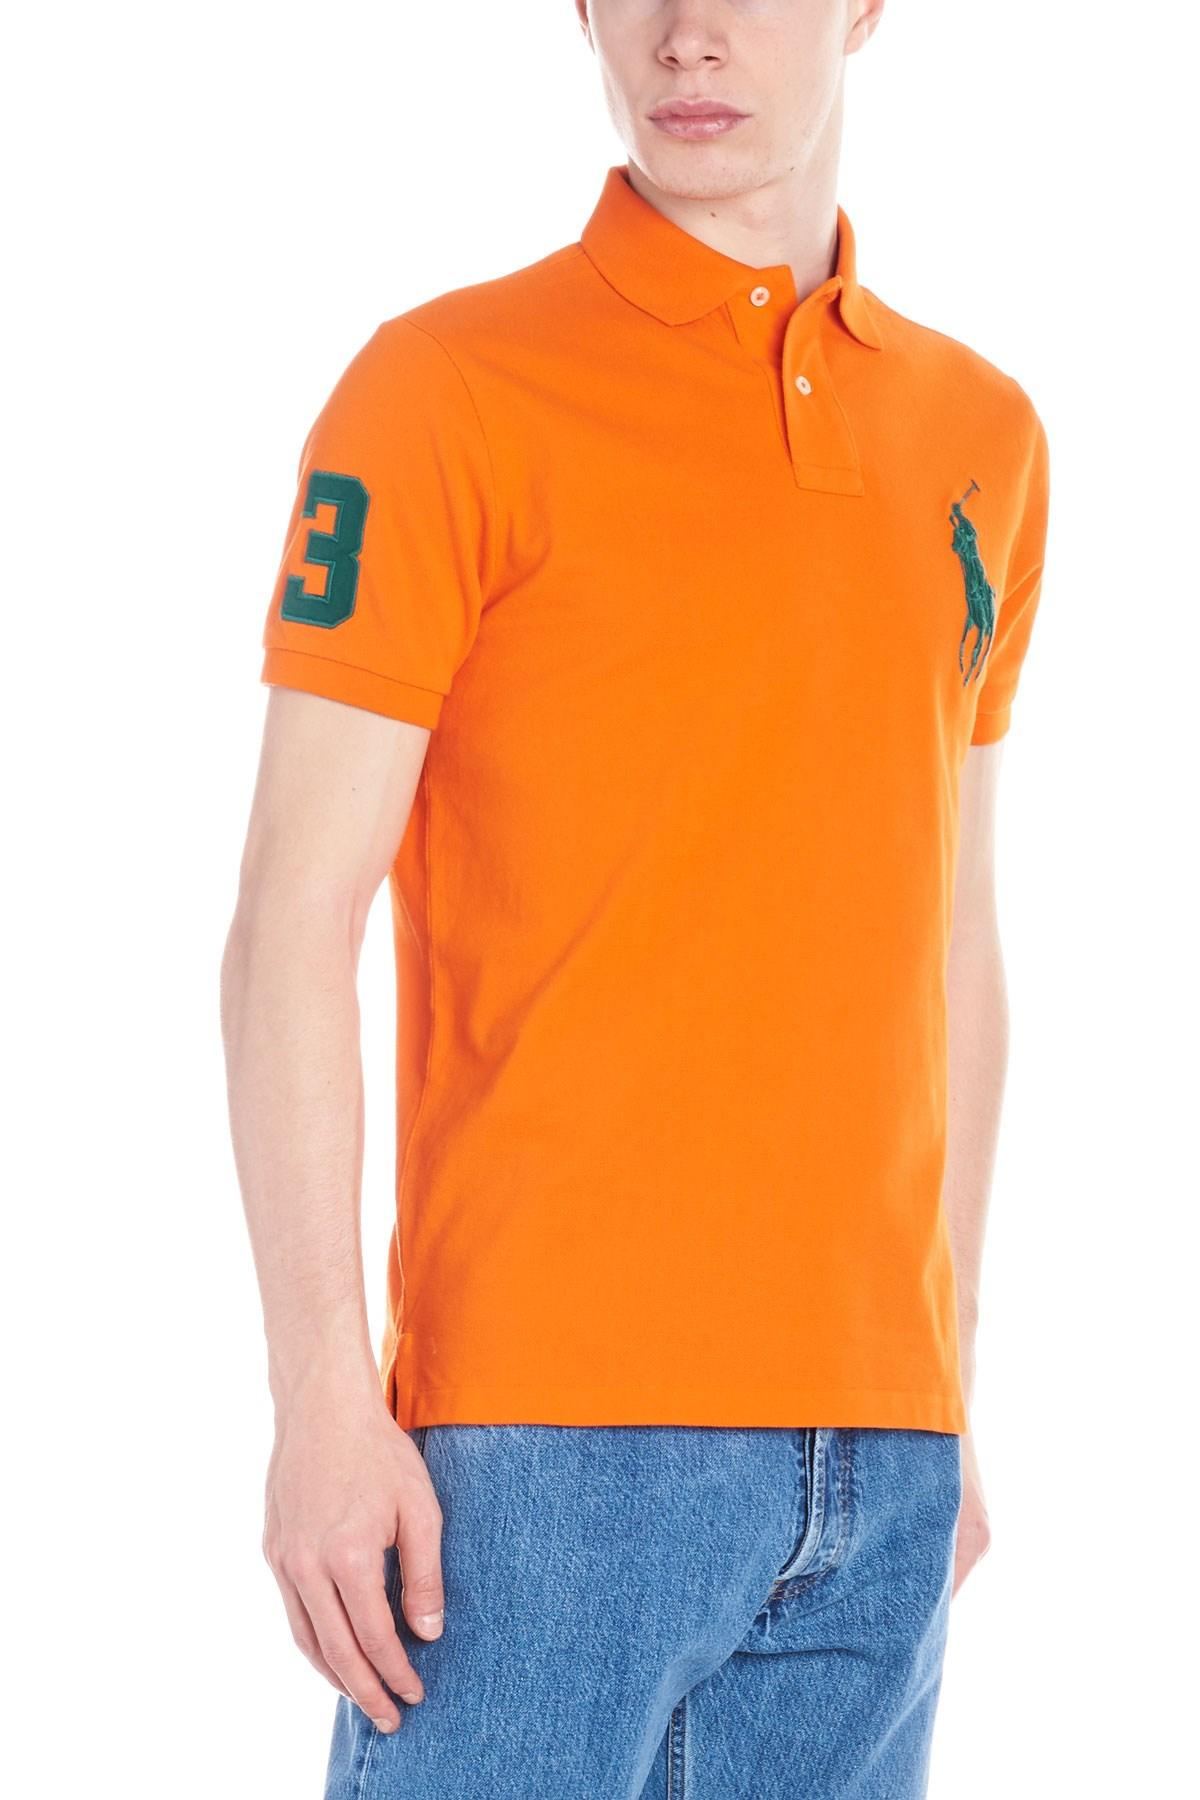 Lyst - Polo Ralph Lauren  big Pony Player  Polo in Orange for Men 9a0270f3a9eb8